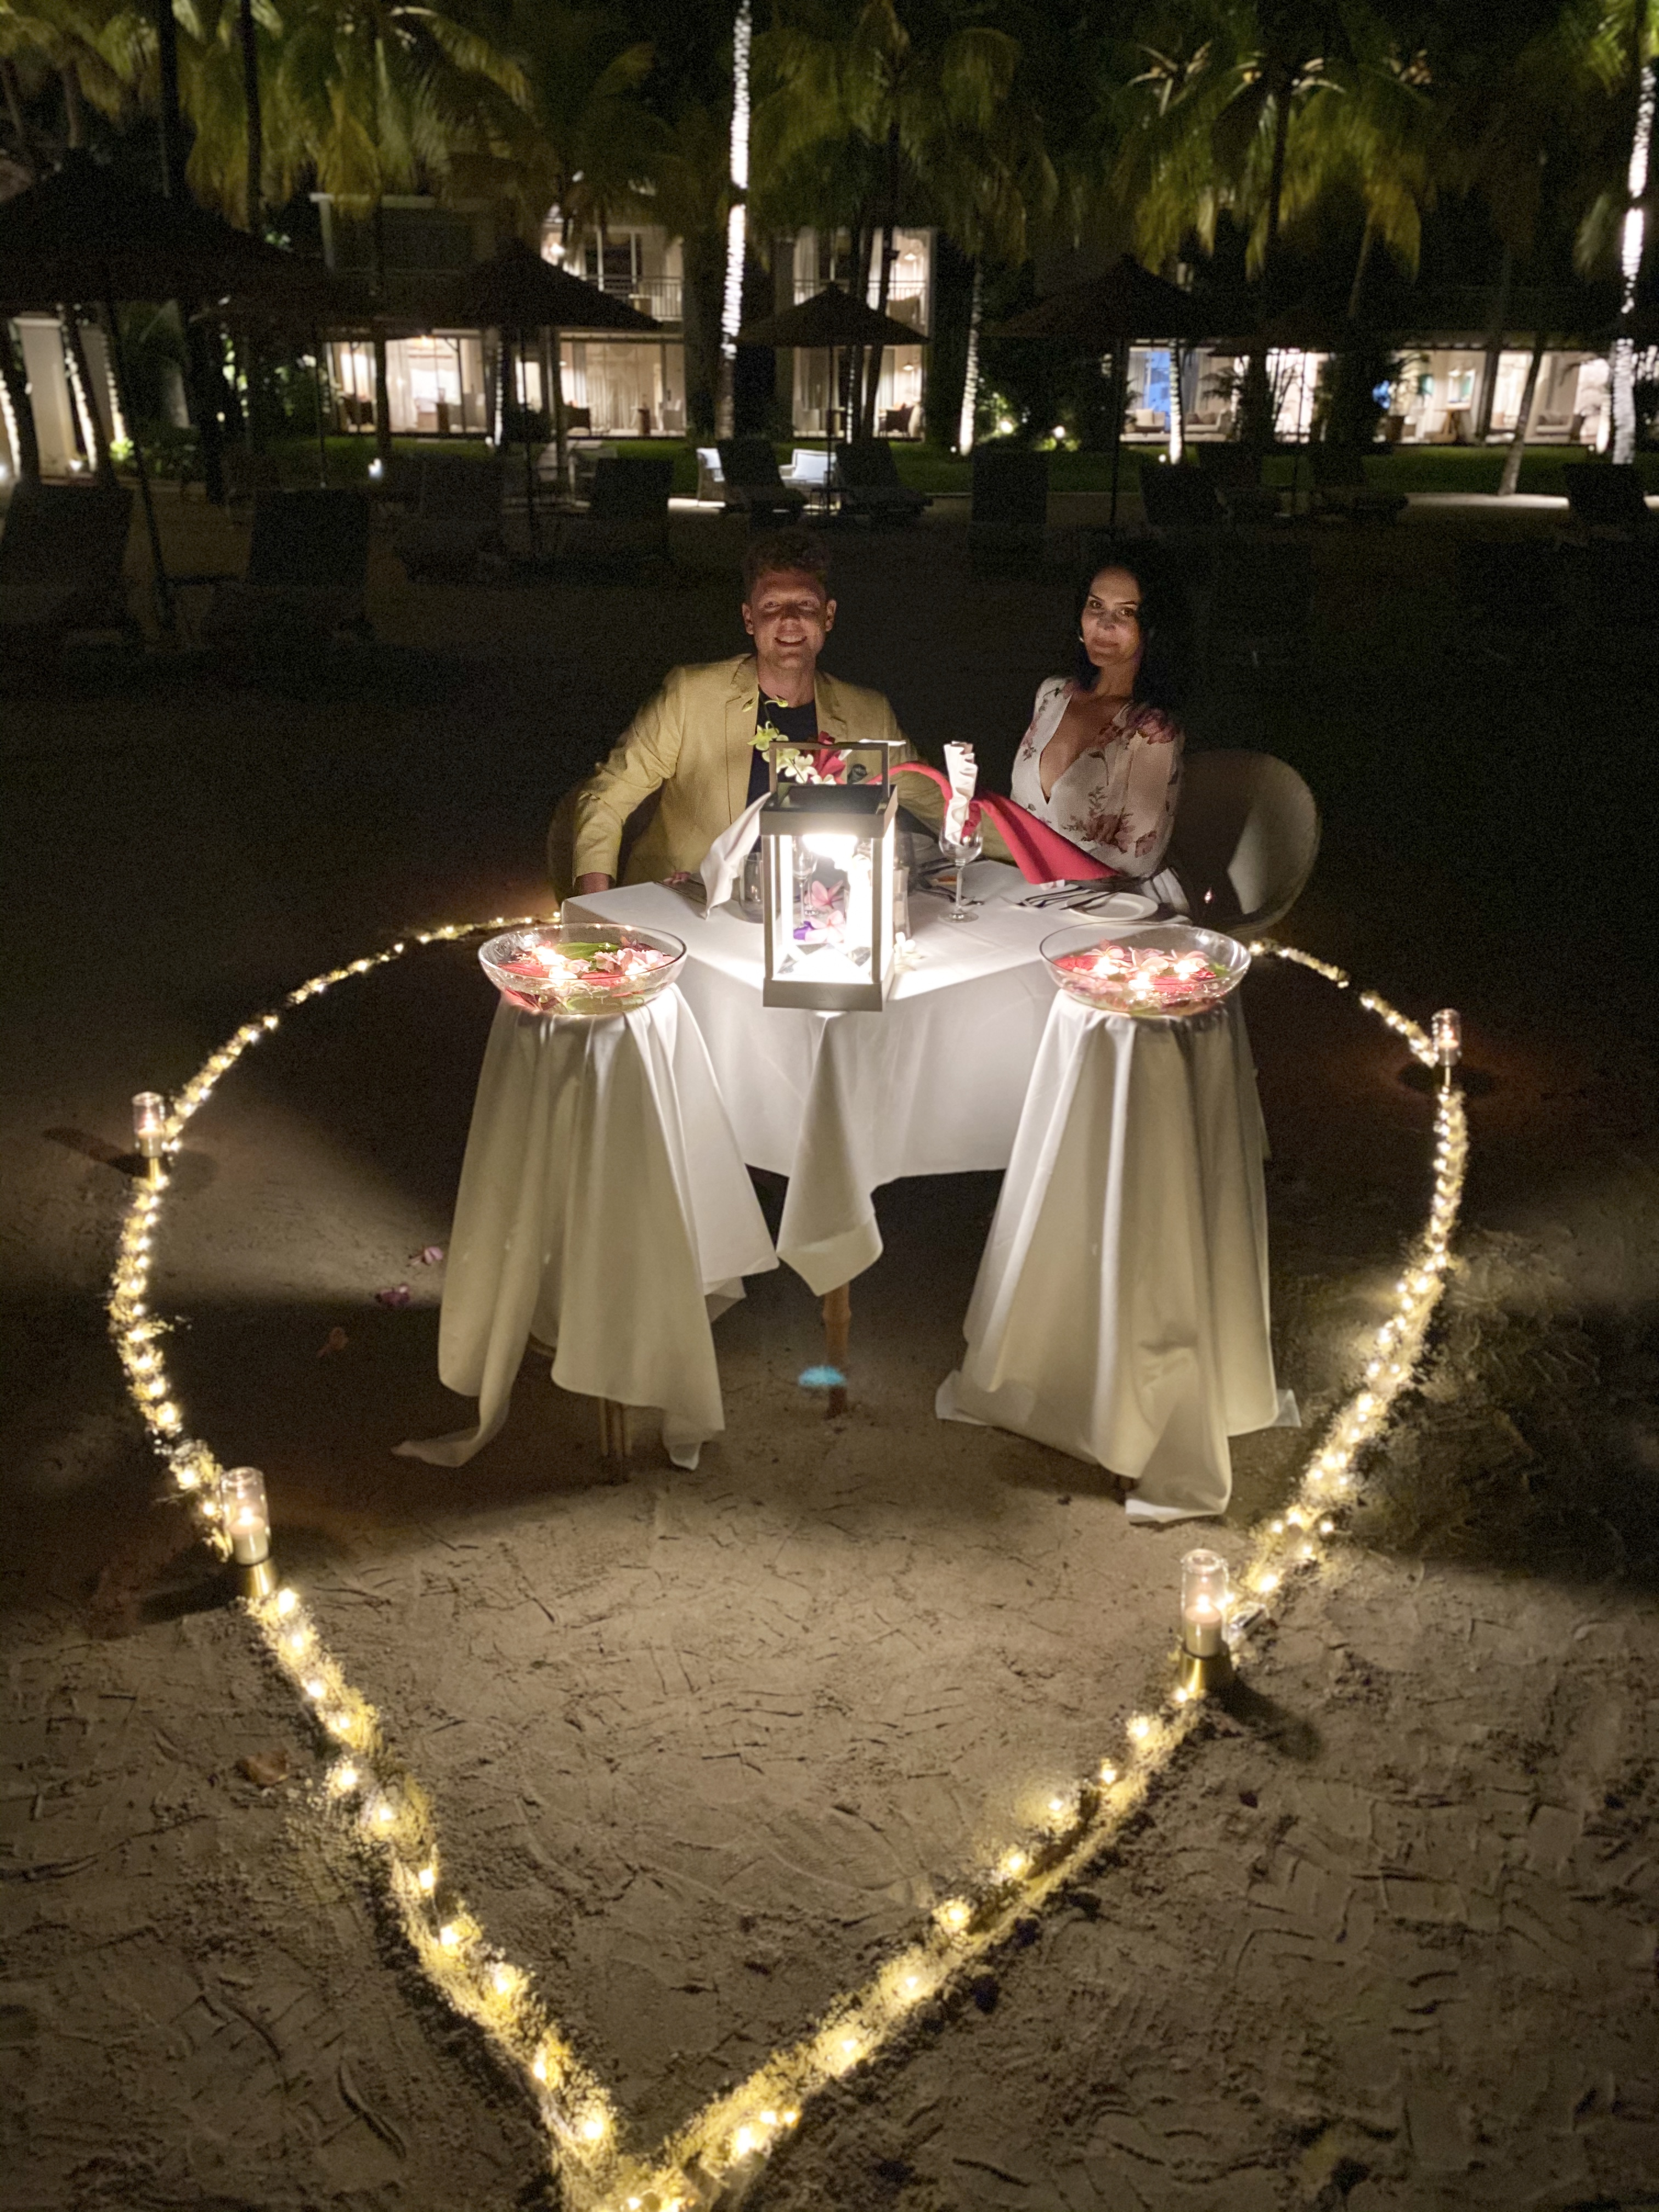 paradise cove romantic dinner for two - real wedding review in Mauritius